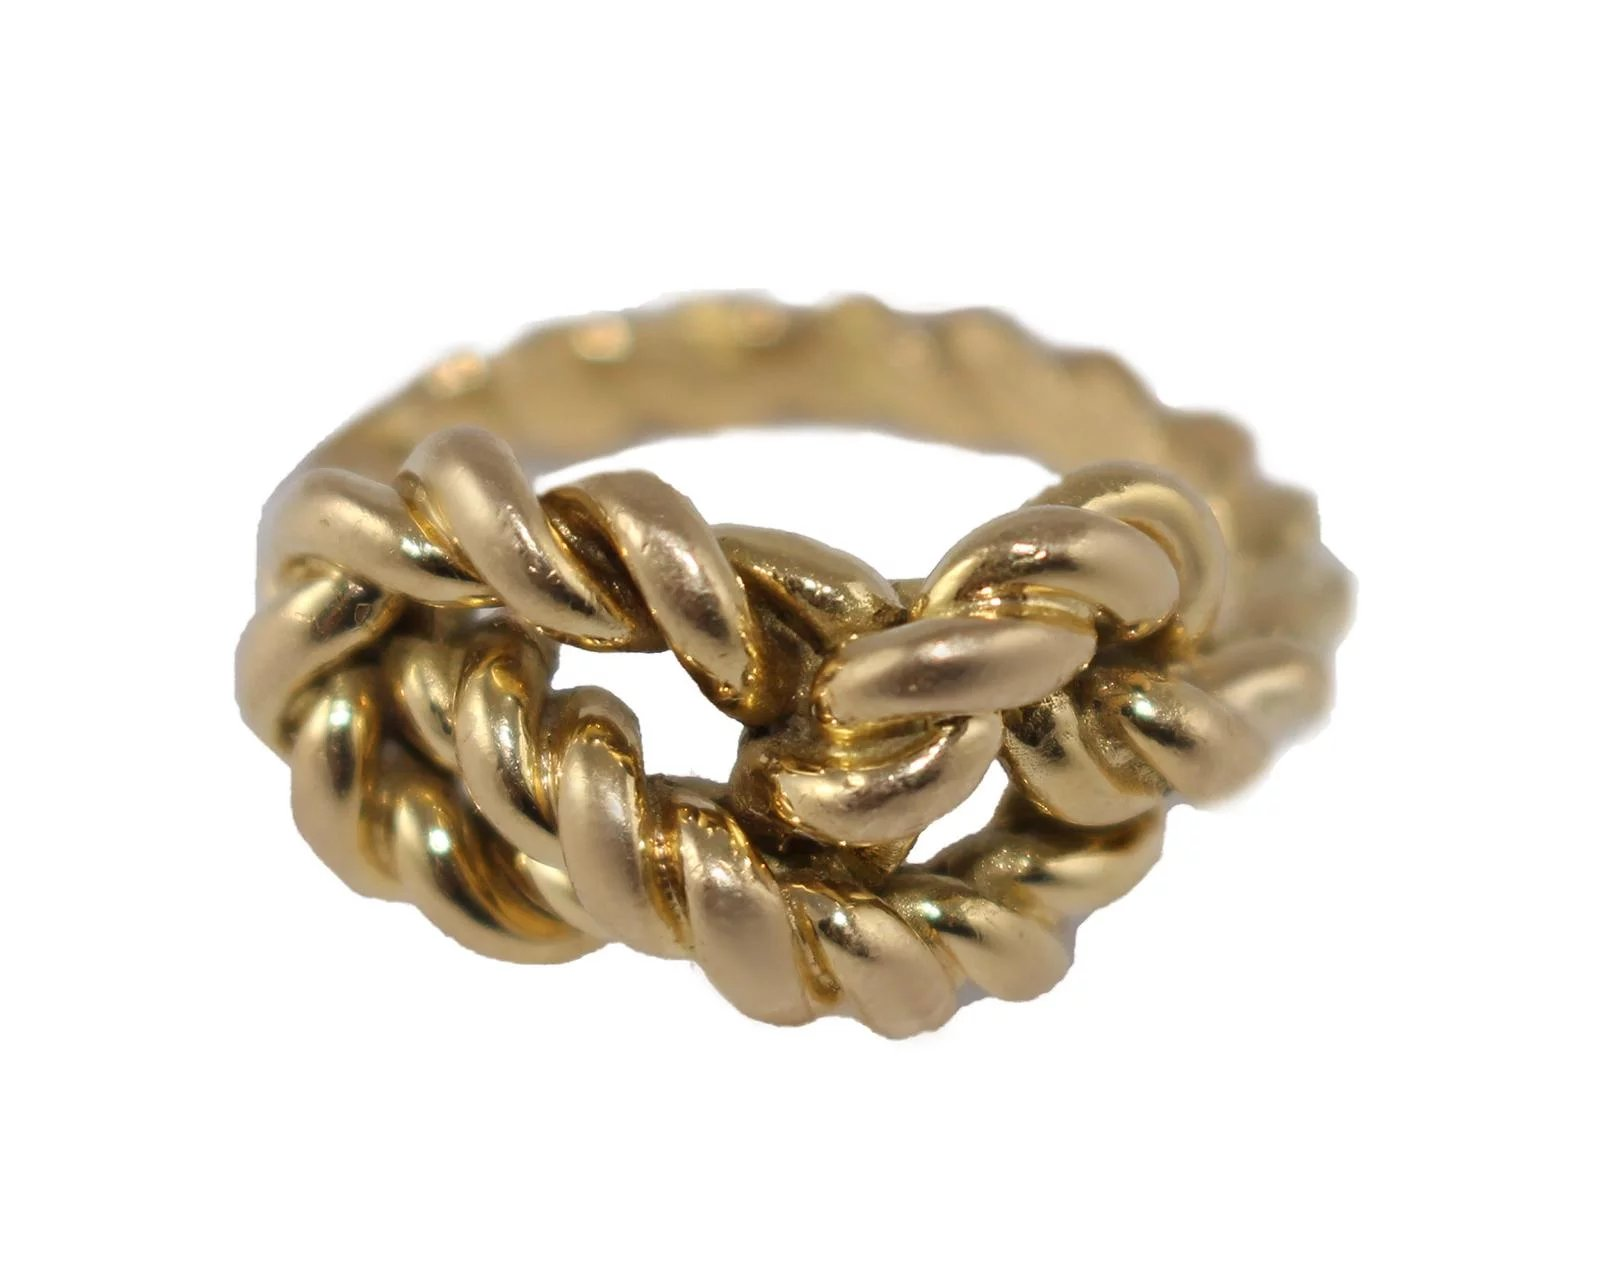 24b173162 18k Gold Gucci Braided Love Knot Ring : Olympic Gold And Jewelry ...